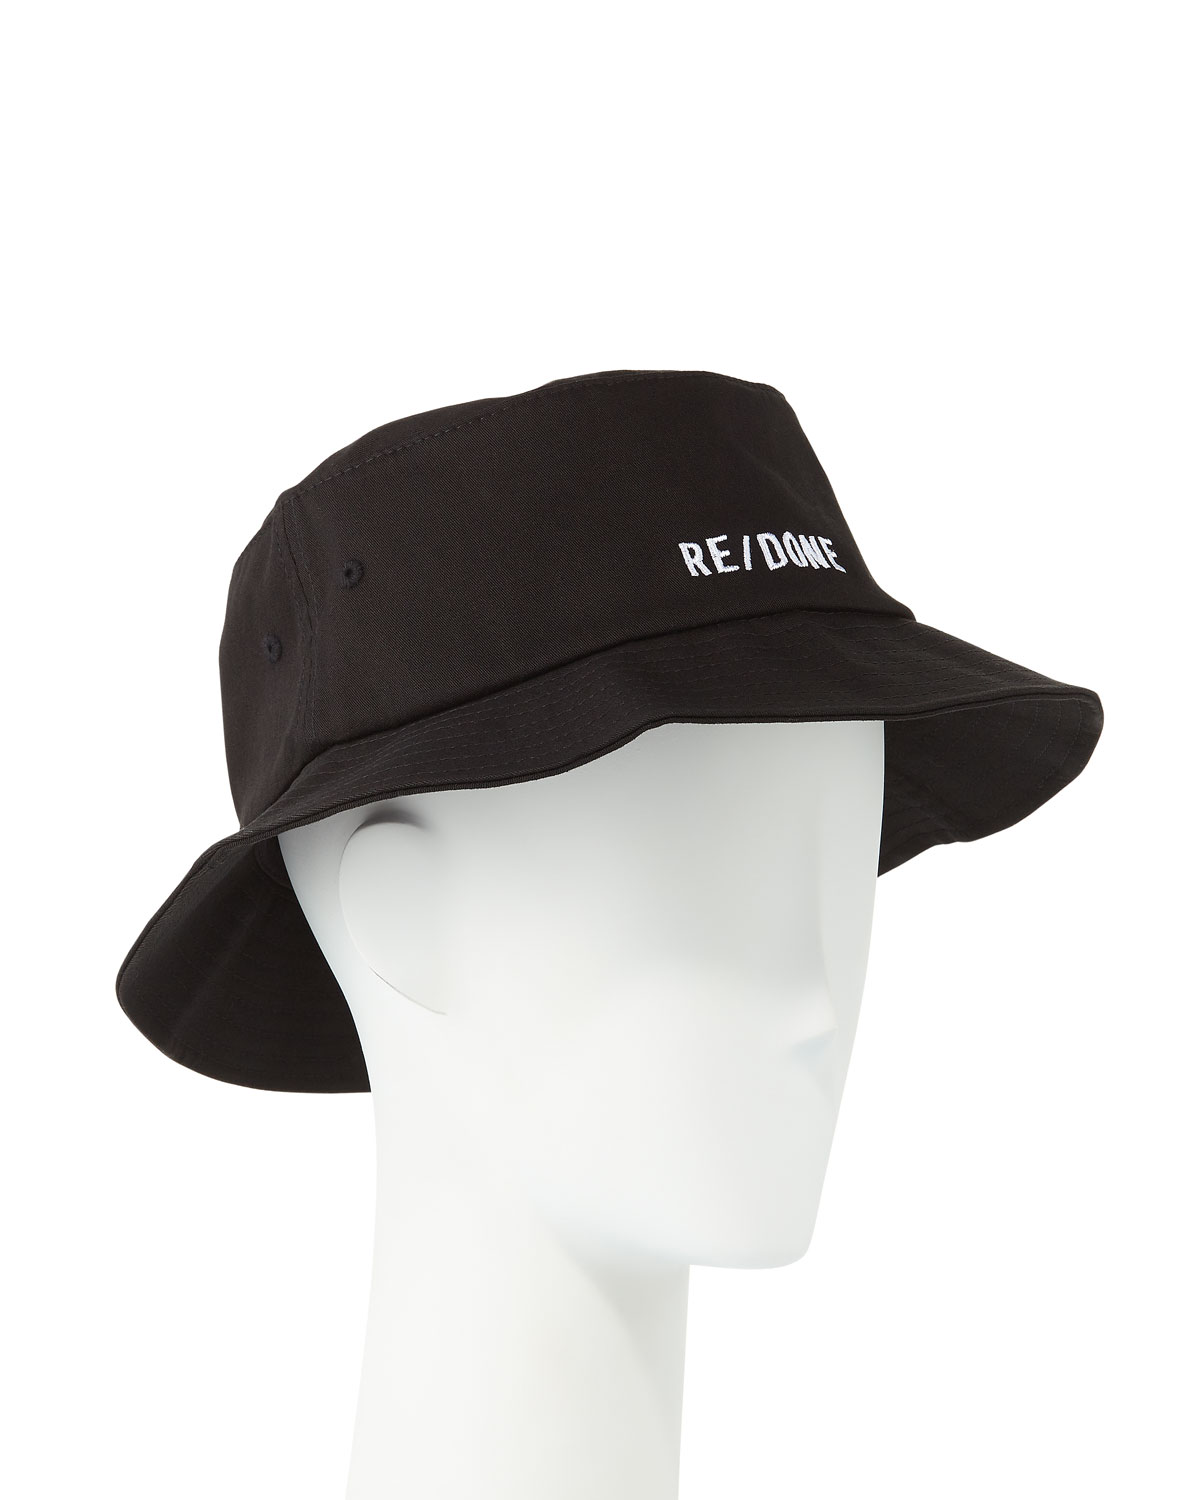 Re/done Hats EMBROIDERED LOGO BUCKET HAT